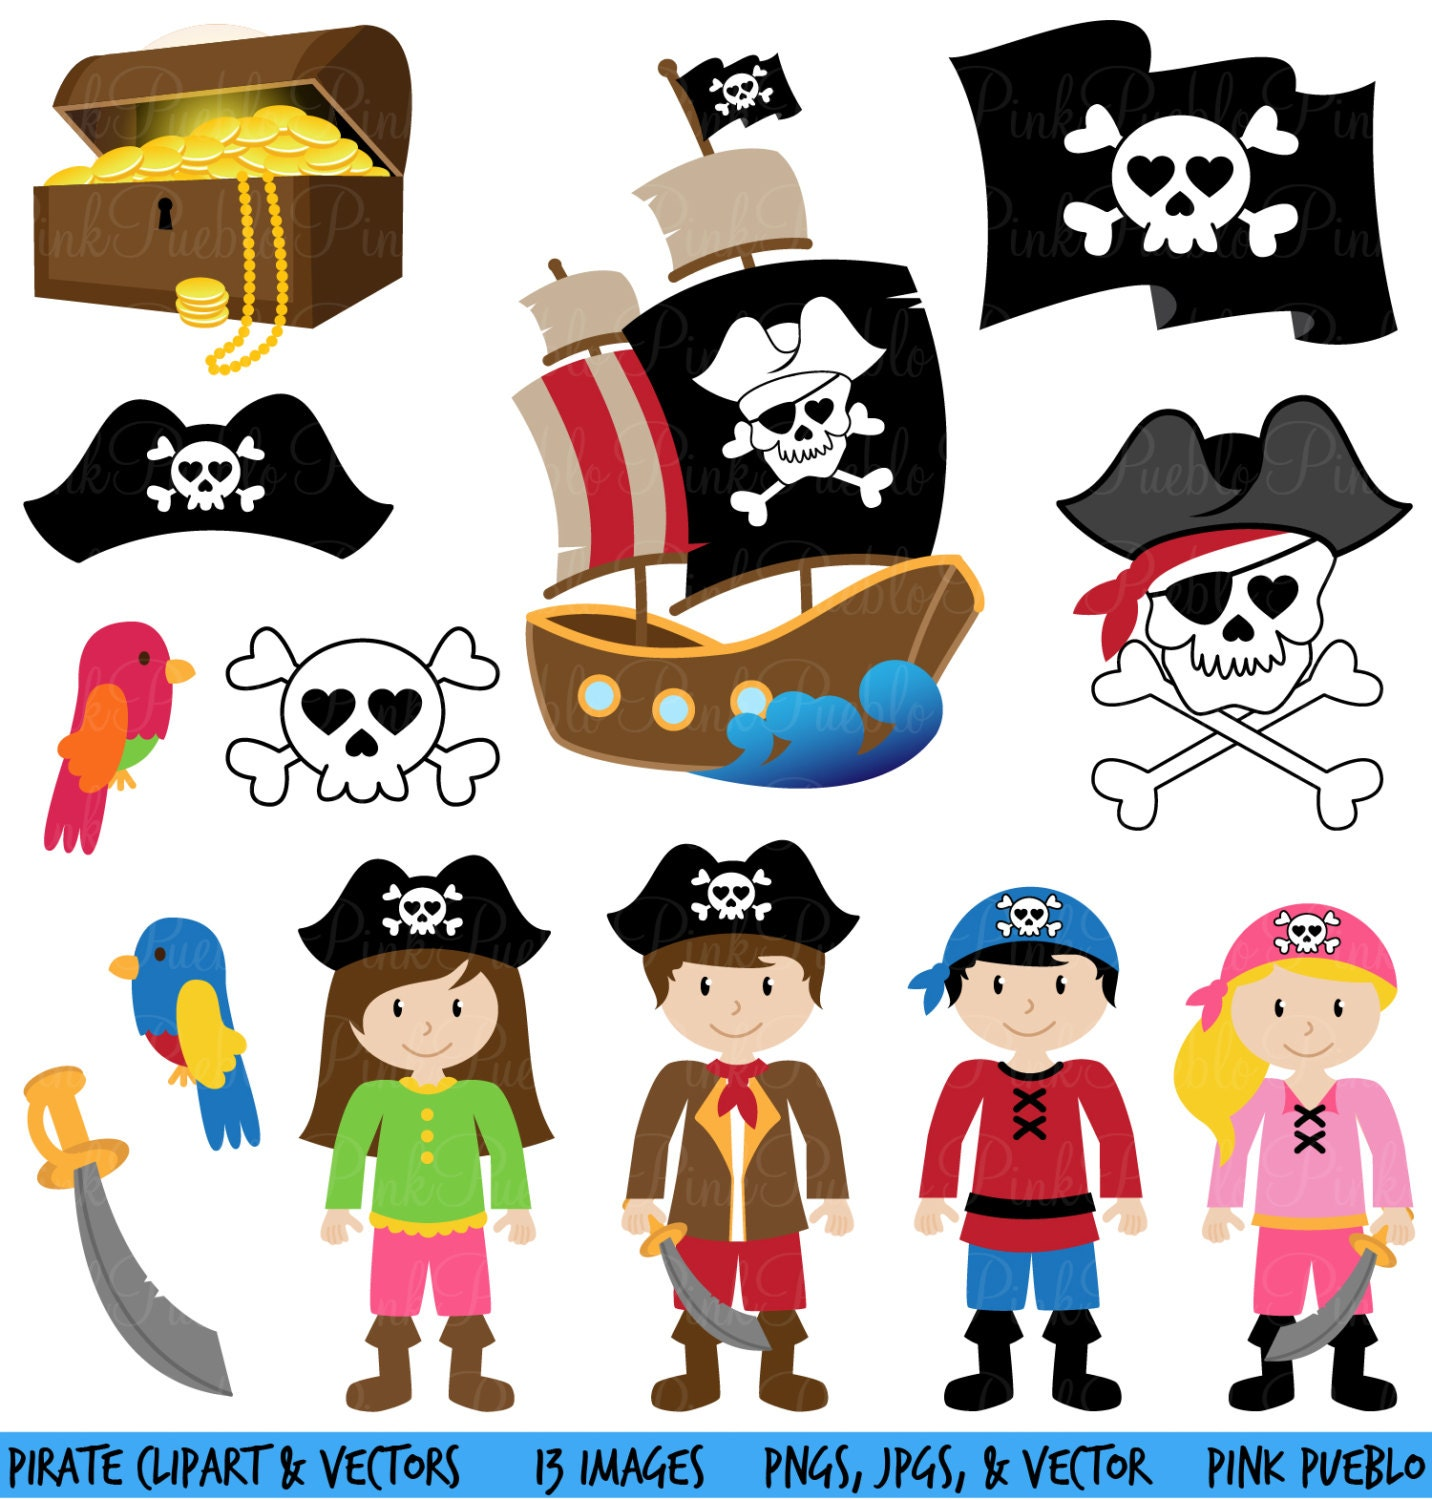 Pirate Clipart Clip Art and Vectors Commercial and by PinkPueblo: www.etsy.com/listing/97463650/pirate-clipart-clip-art-and-vectors